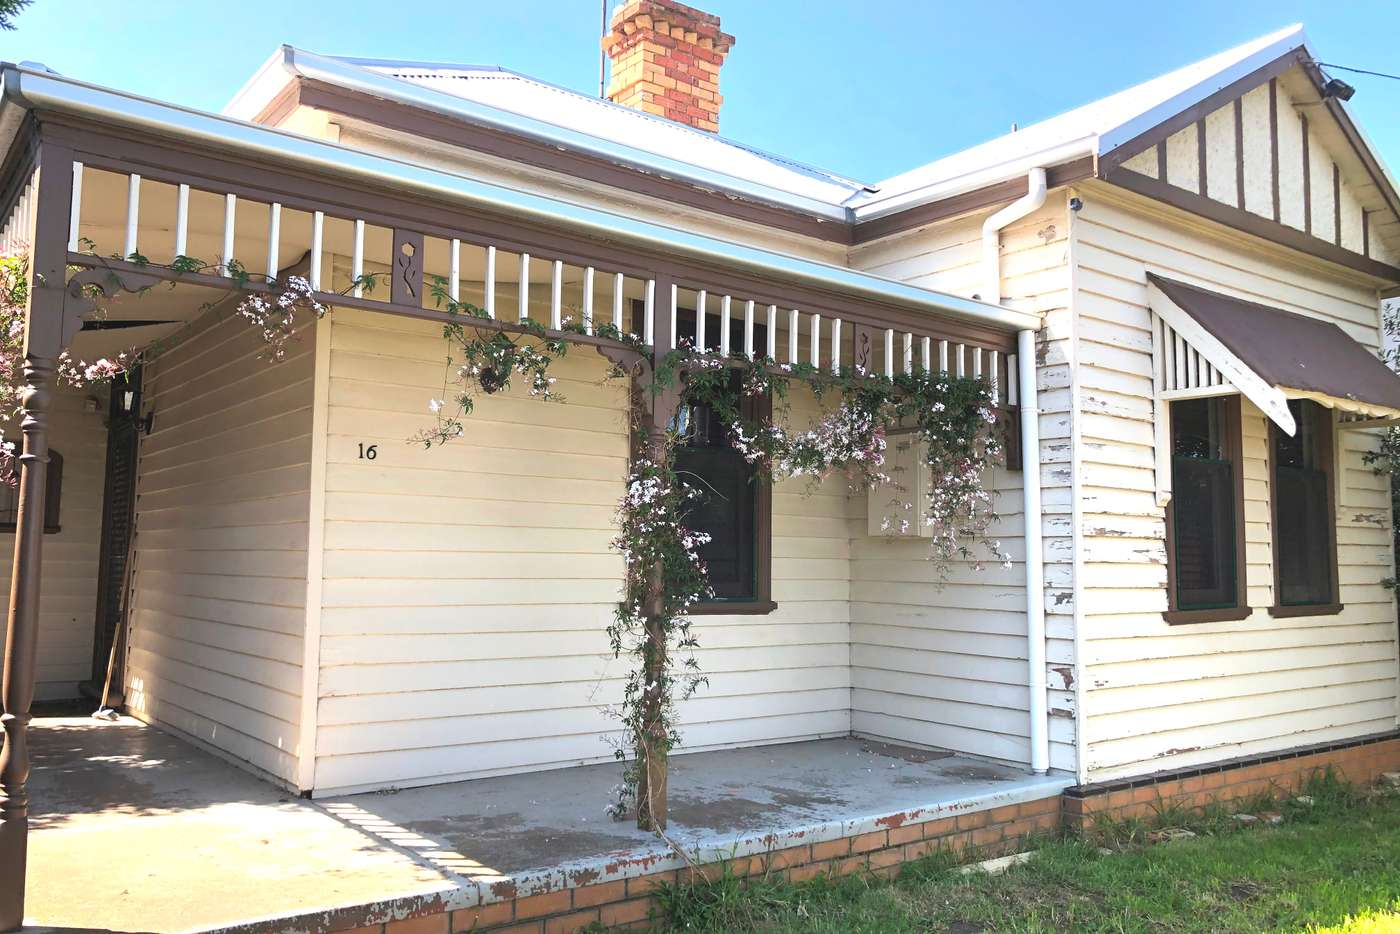 Main view of Homely house listing, 16 Ballantyne Street, Thornbury VIC 3071